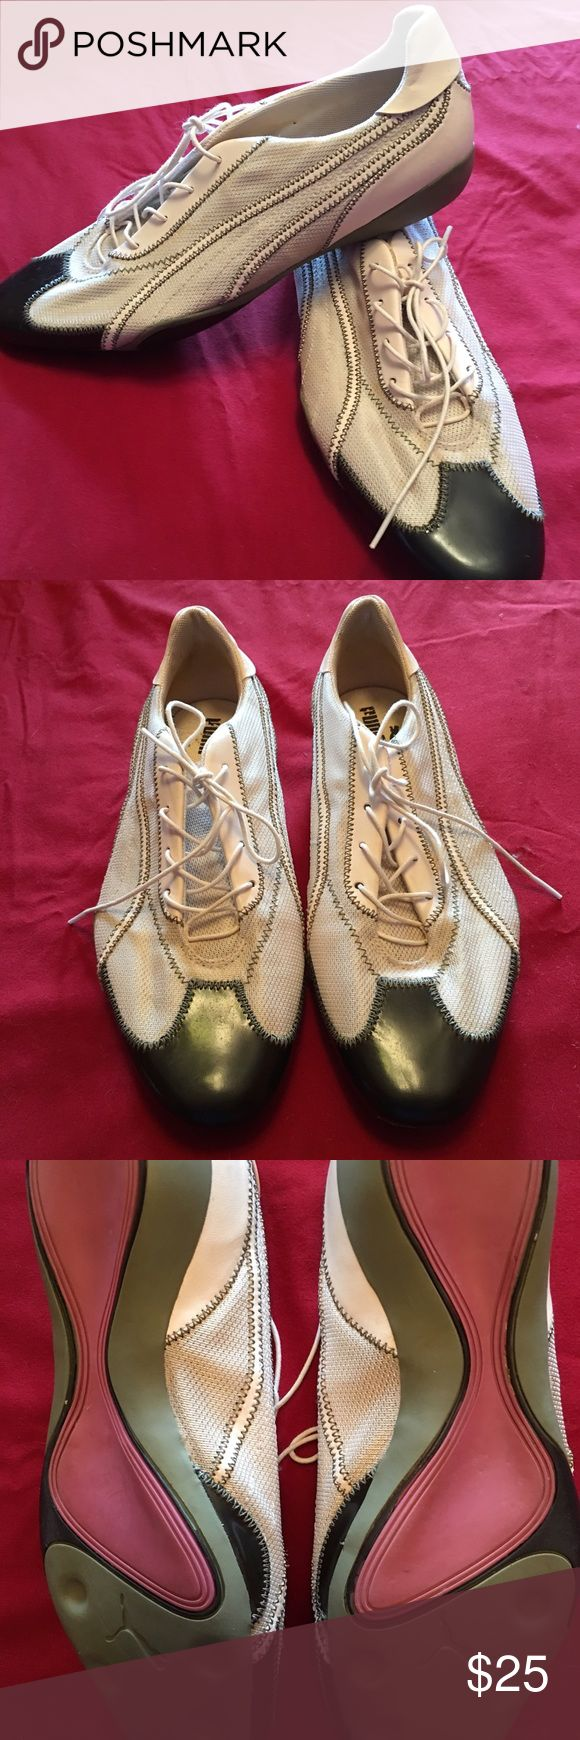 Puma Dapper Dan Rare Ladies Lace Up Ladies Puma Dapper Dan, Casual Lace Up Fashion Trainers, Size 10, Great Condition!! Leather and Textile Upper, Toe Cap Detail, Tappered Toe Puma Shoes Athletic Shoes